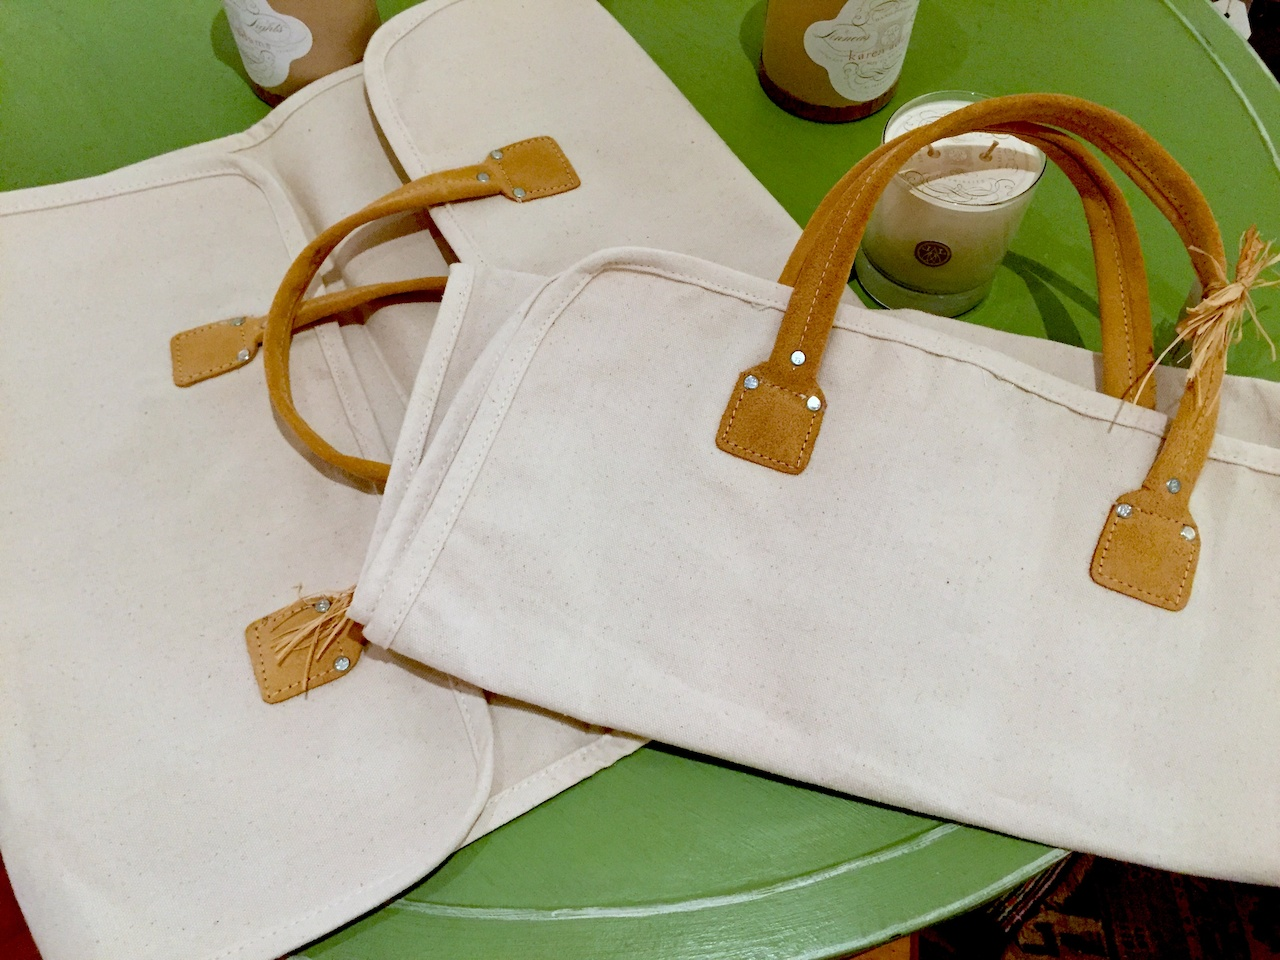 Canvas and suede log carrier, $18 at Palladio Interiors